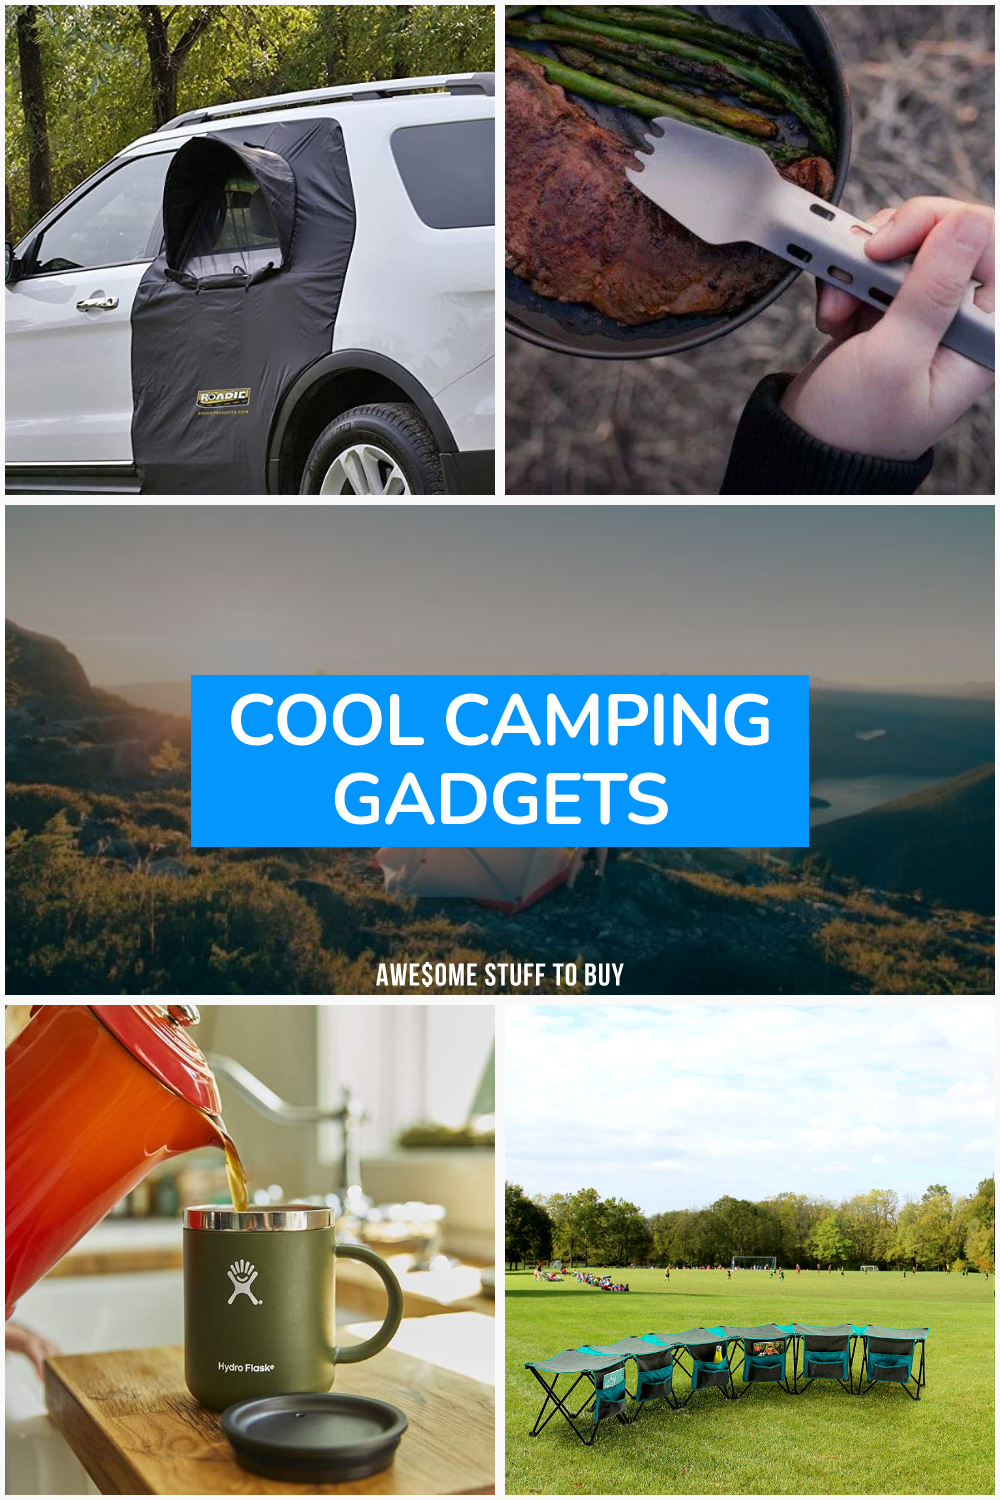 Cool Camping Gadgets // Awesome Stuff to Buy